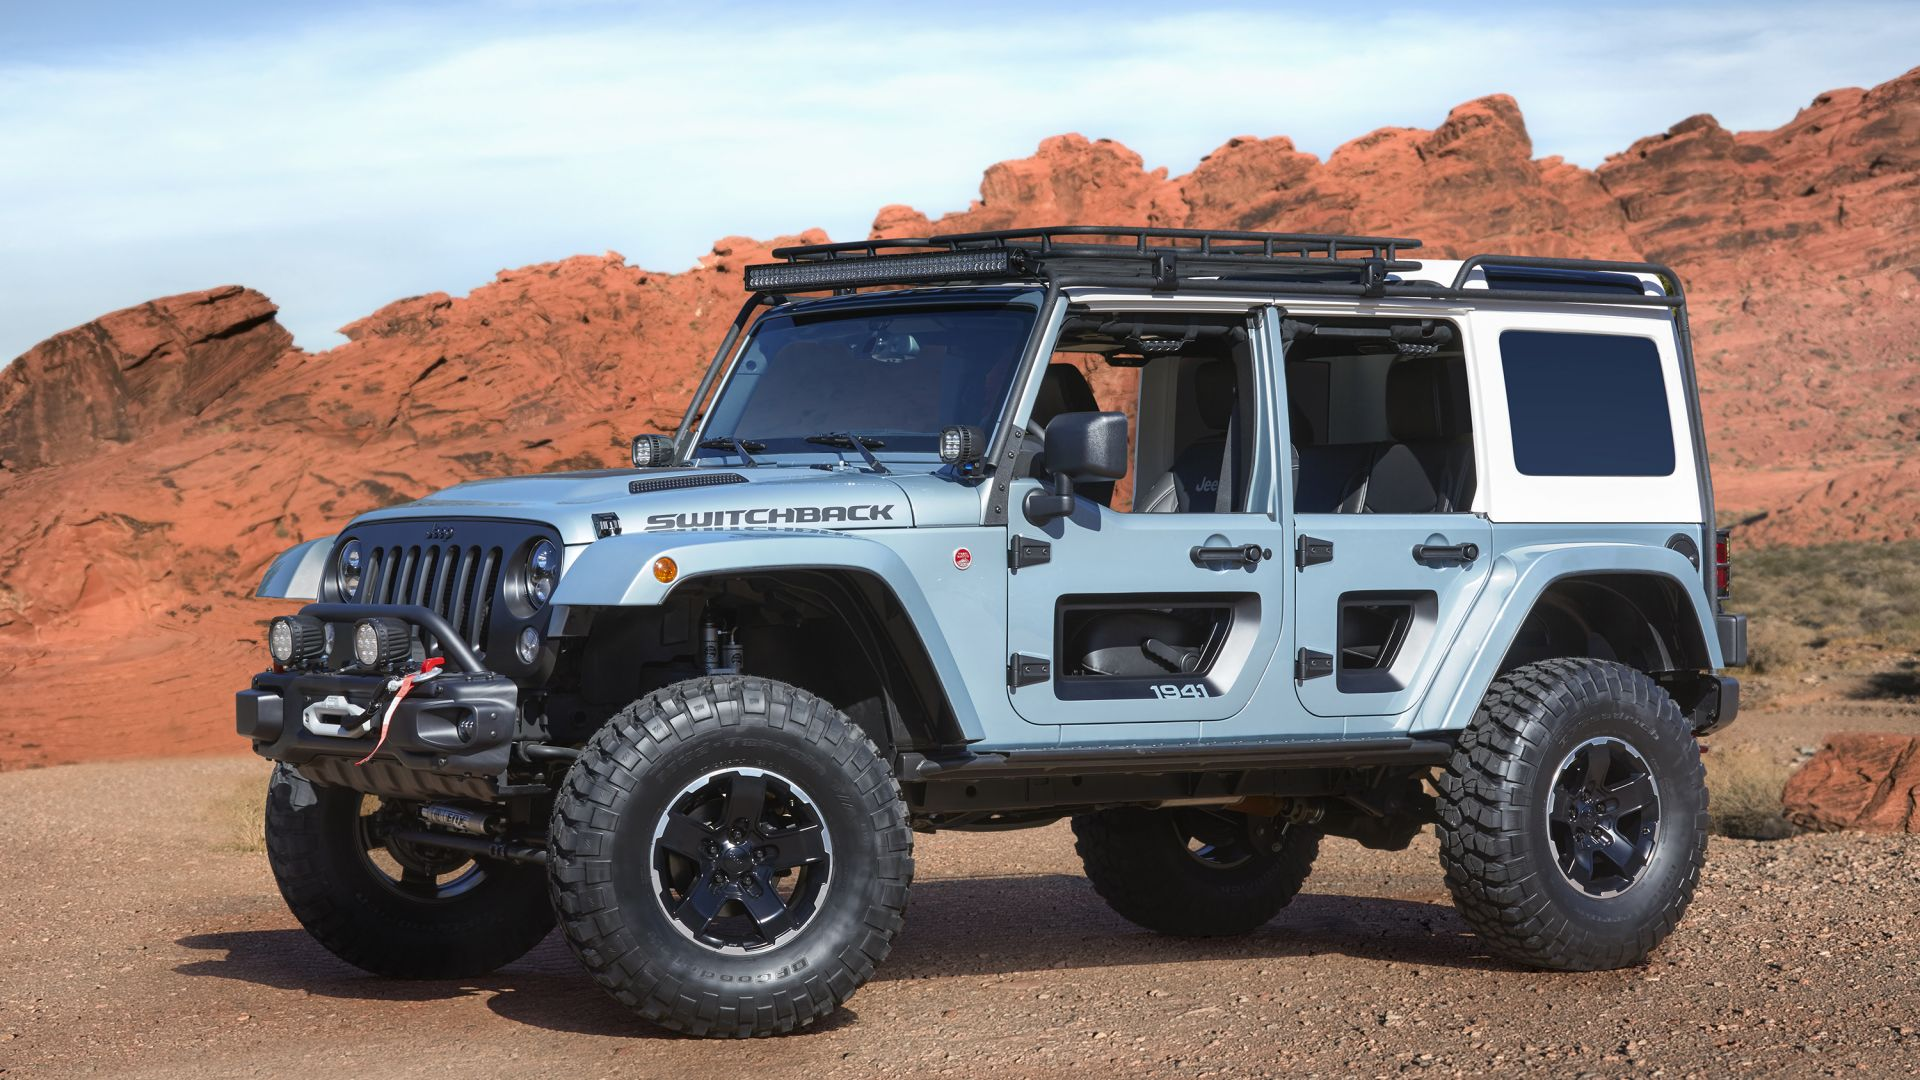 Jeep Switchback, Jeep Wrangler, SUV, concept (horizontal)